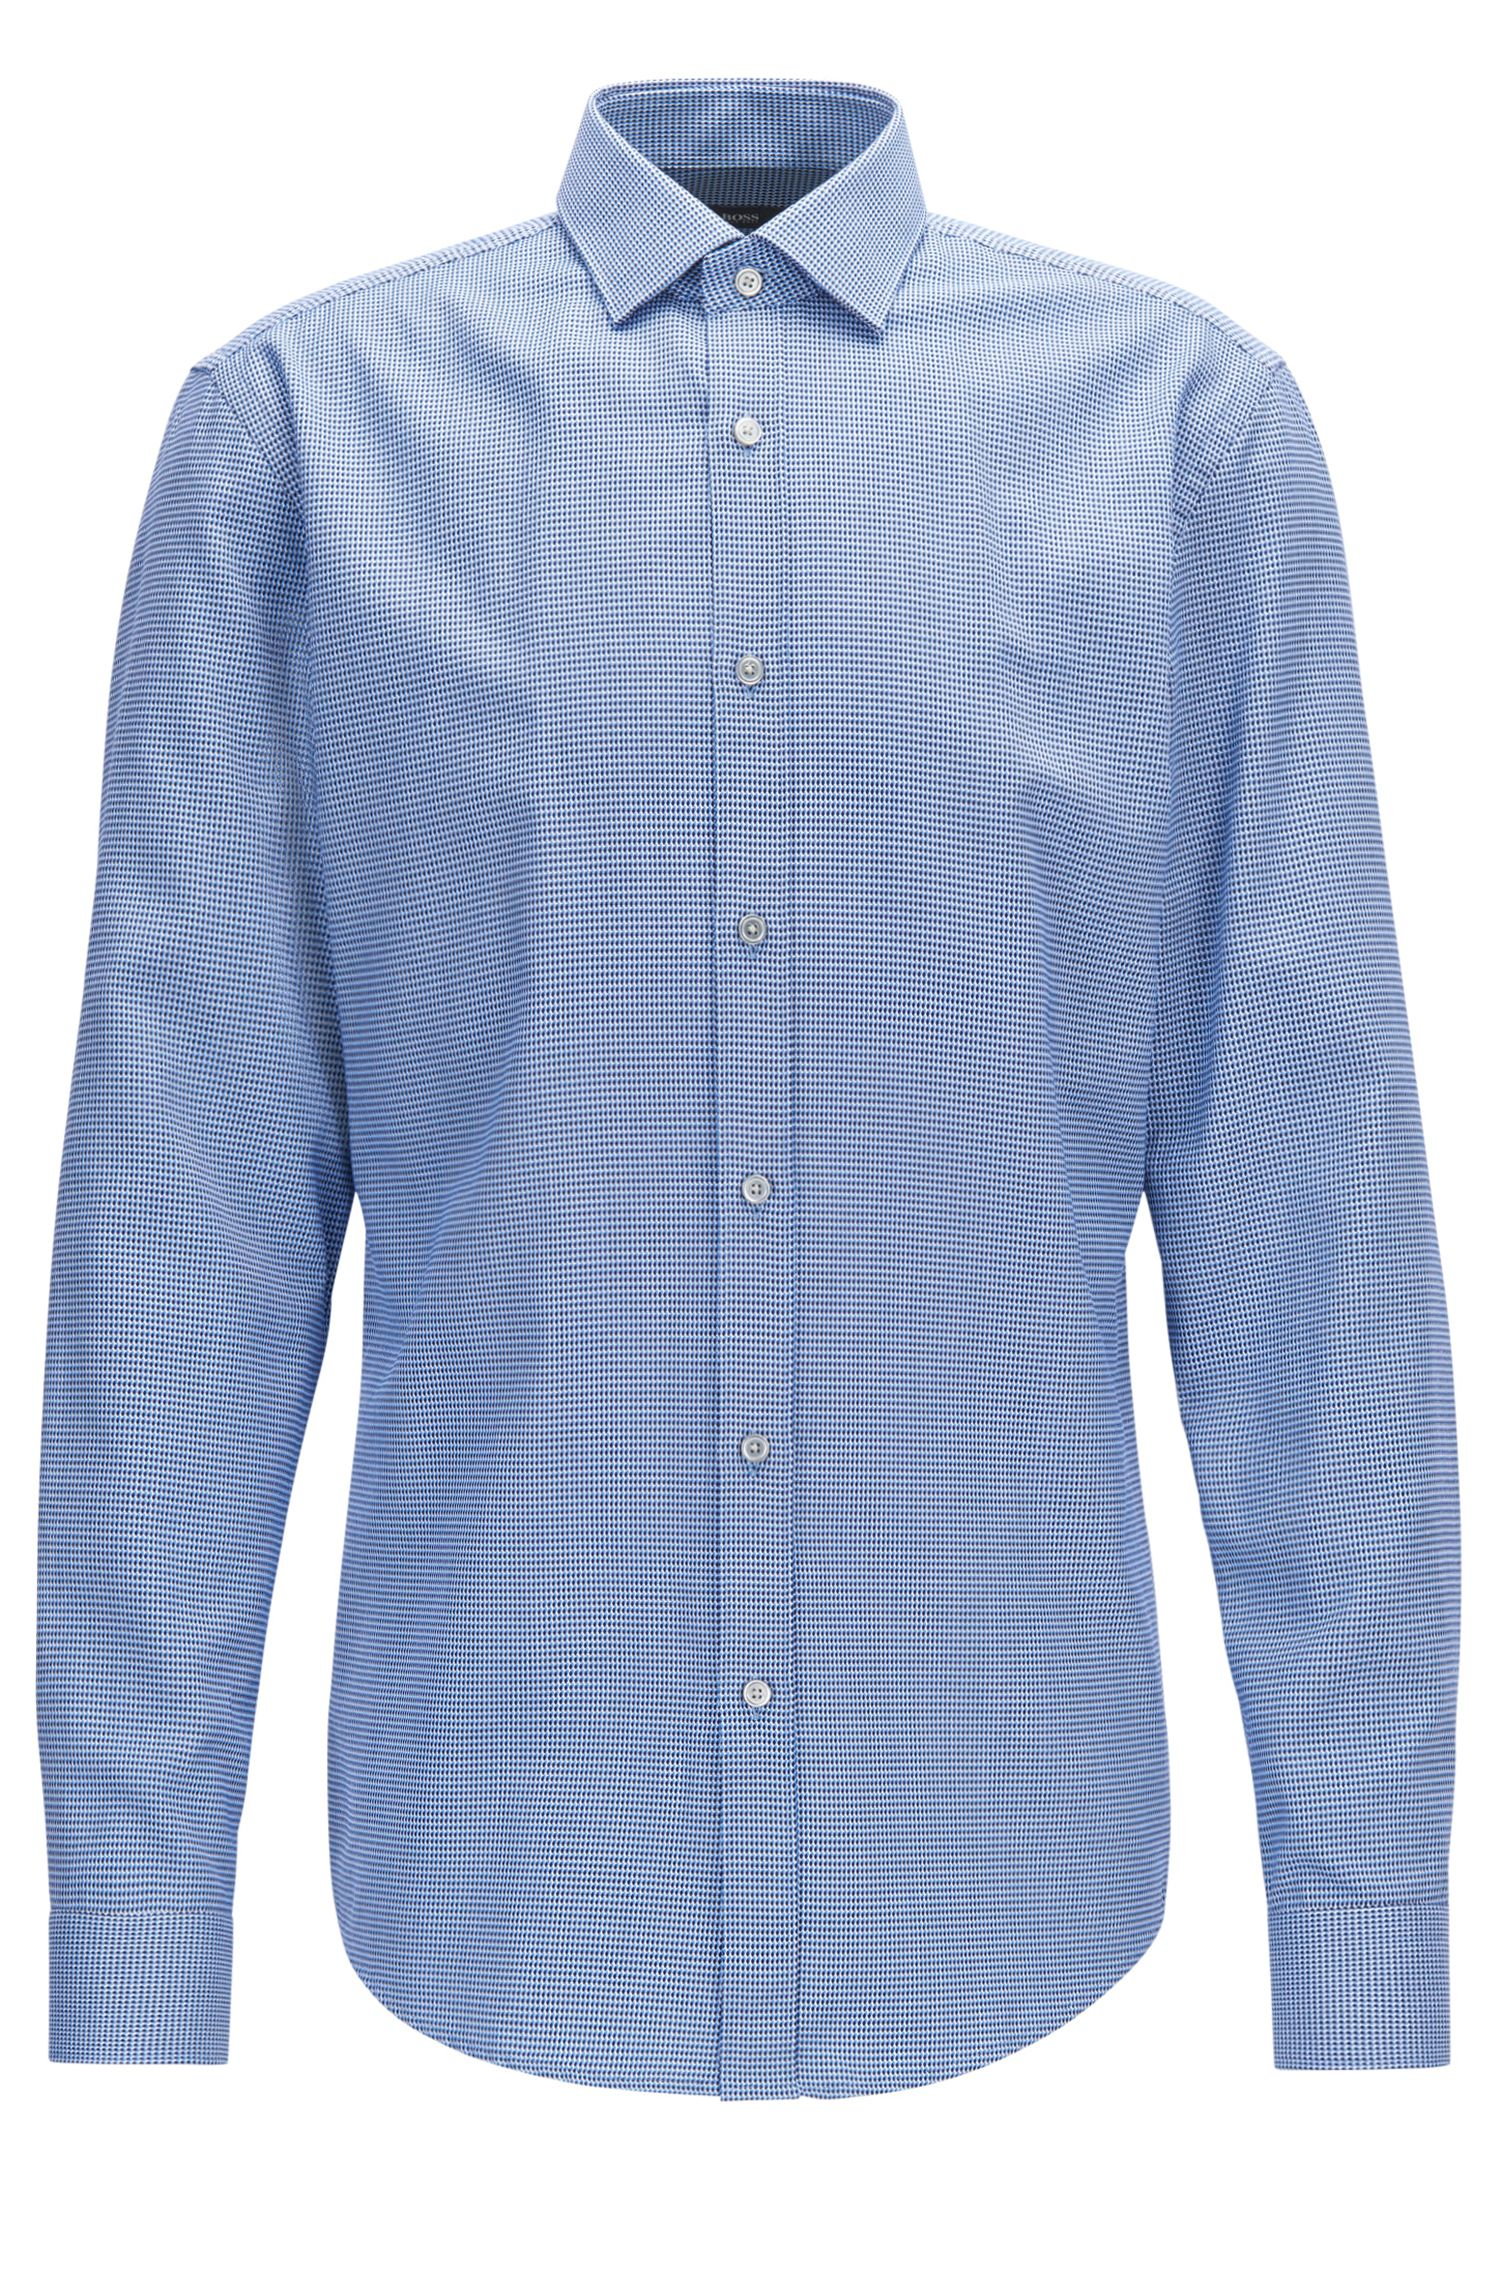 Geo-Patterned Cotton Dress Shirt, Slim Fit | Isaak